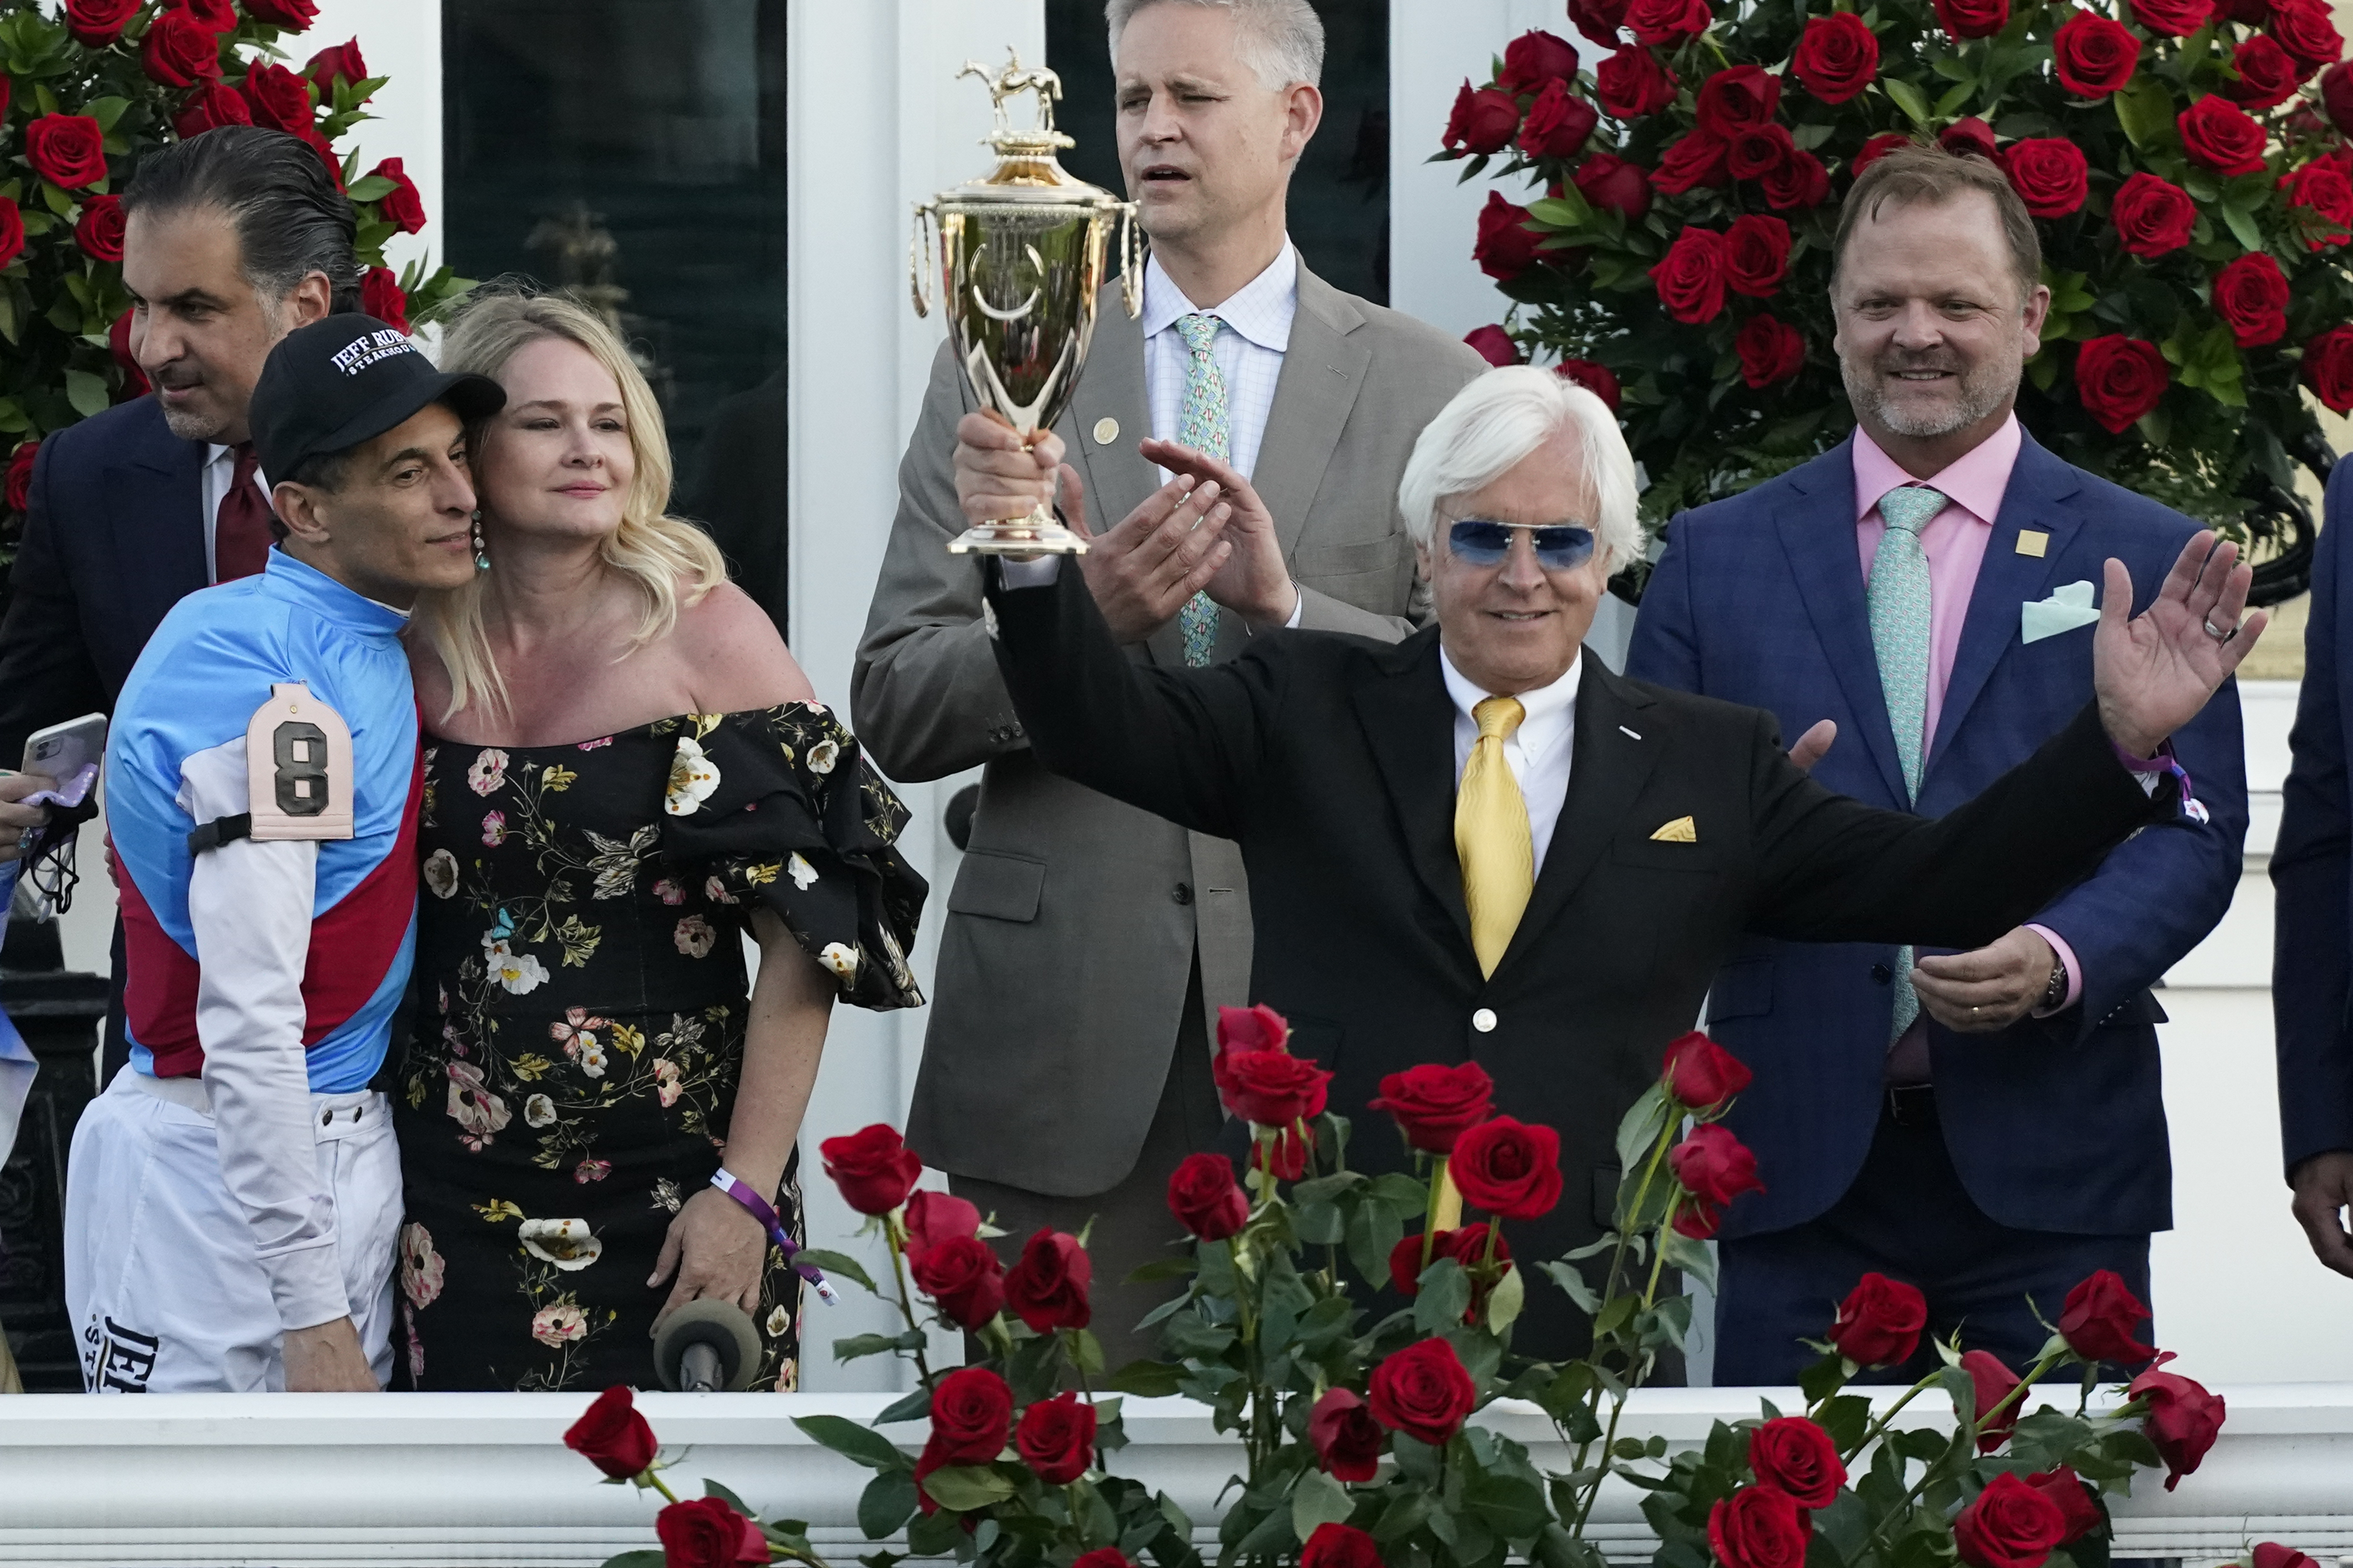 Jockey John Velazquez, left, watches as trainer Bob Baffert holds up the winner's trophy after they victory with Medina Spirit in the 147th running of the Kentucky Derby at Churchill Downs in Louisville, Ky, on May 1, 2021.